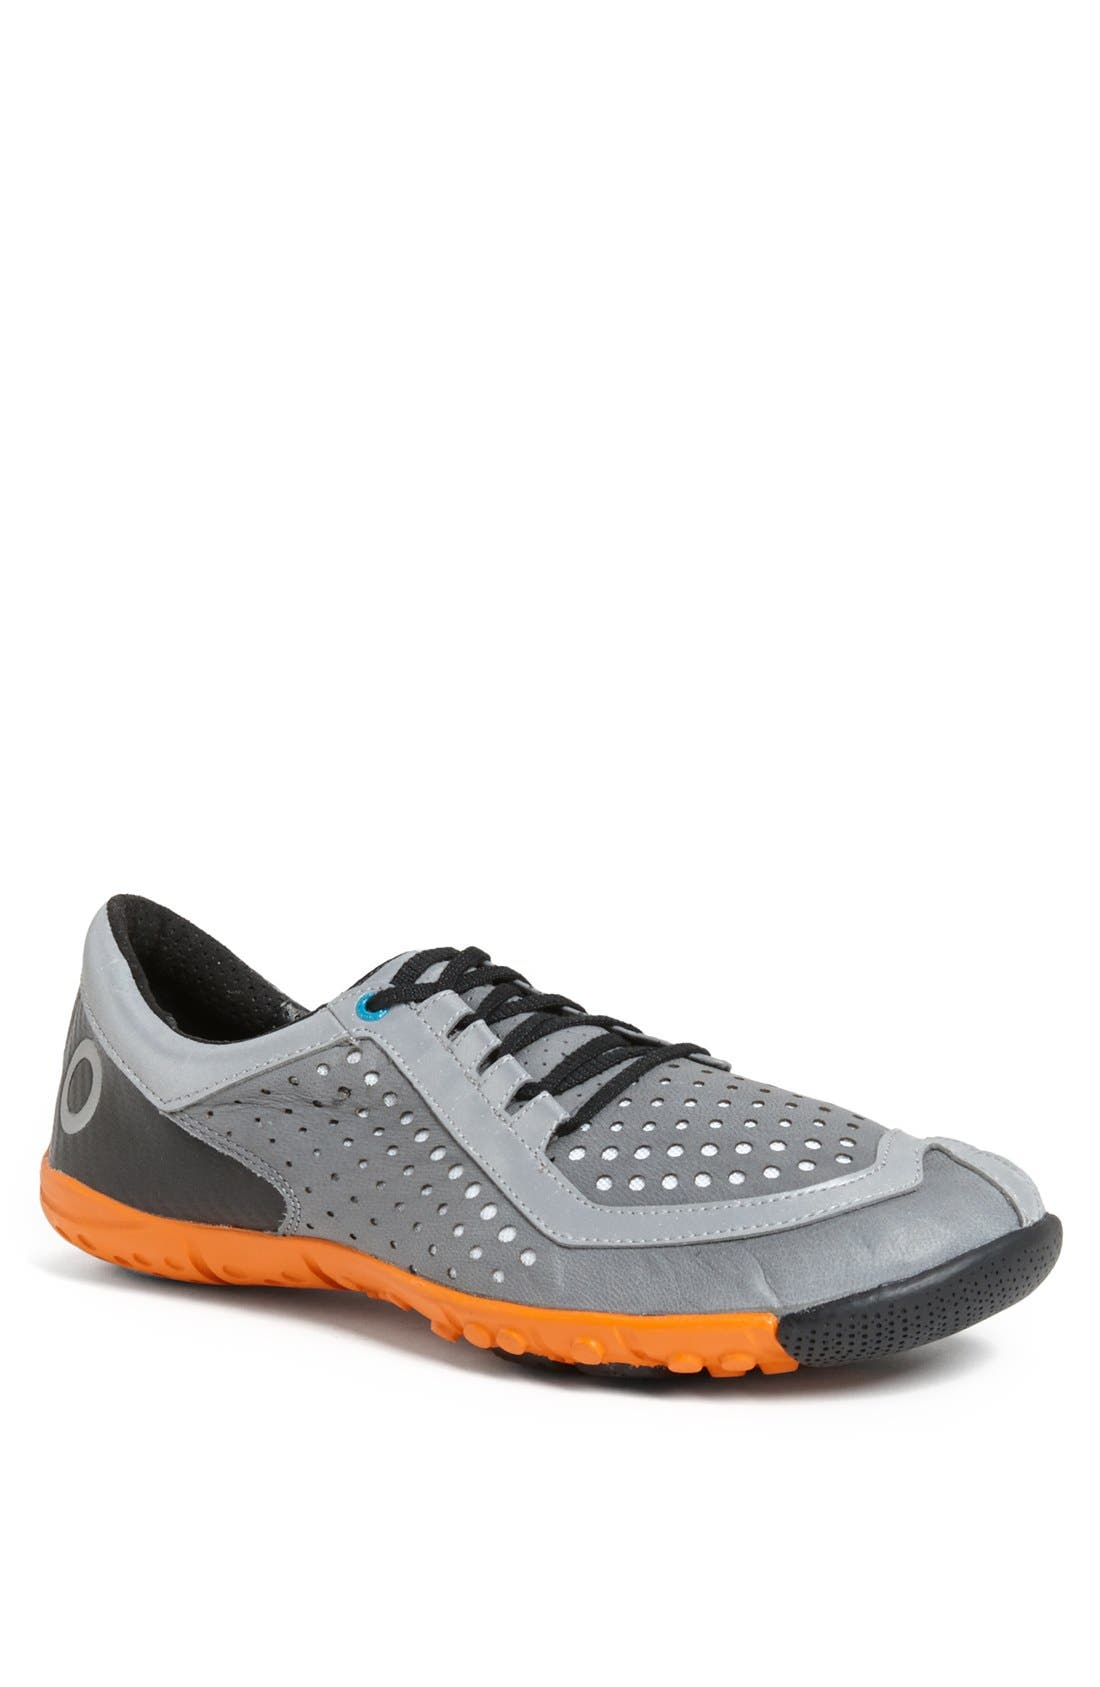 SKORA,                             'CORE' Running Shoe,                             Main thumbnail 1, color,                             020